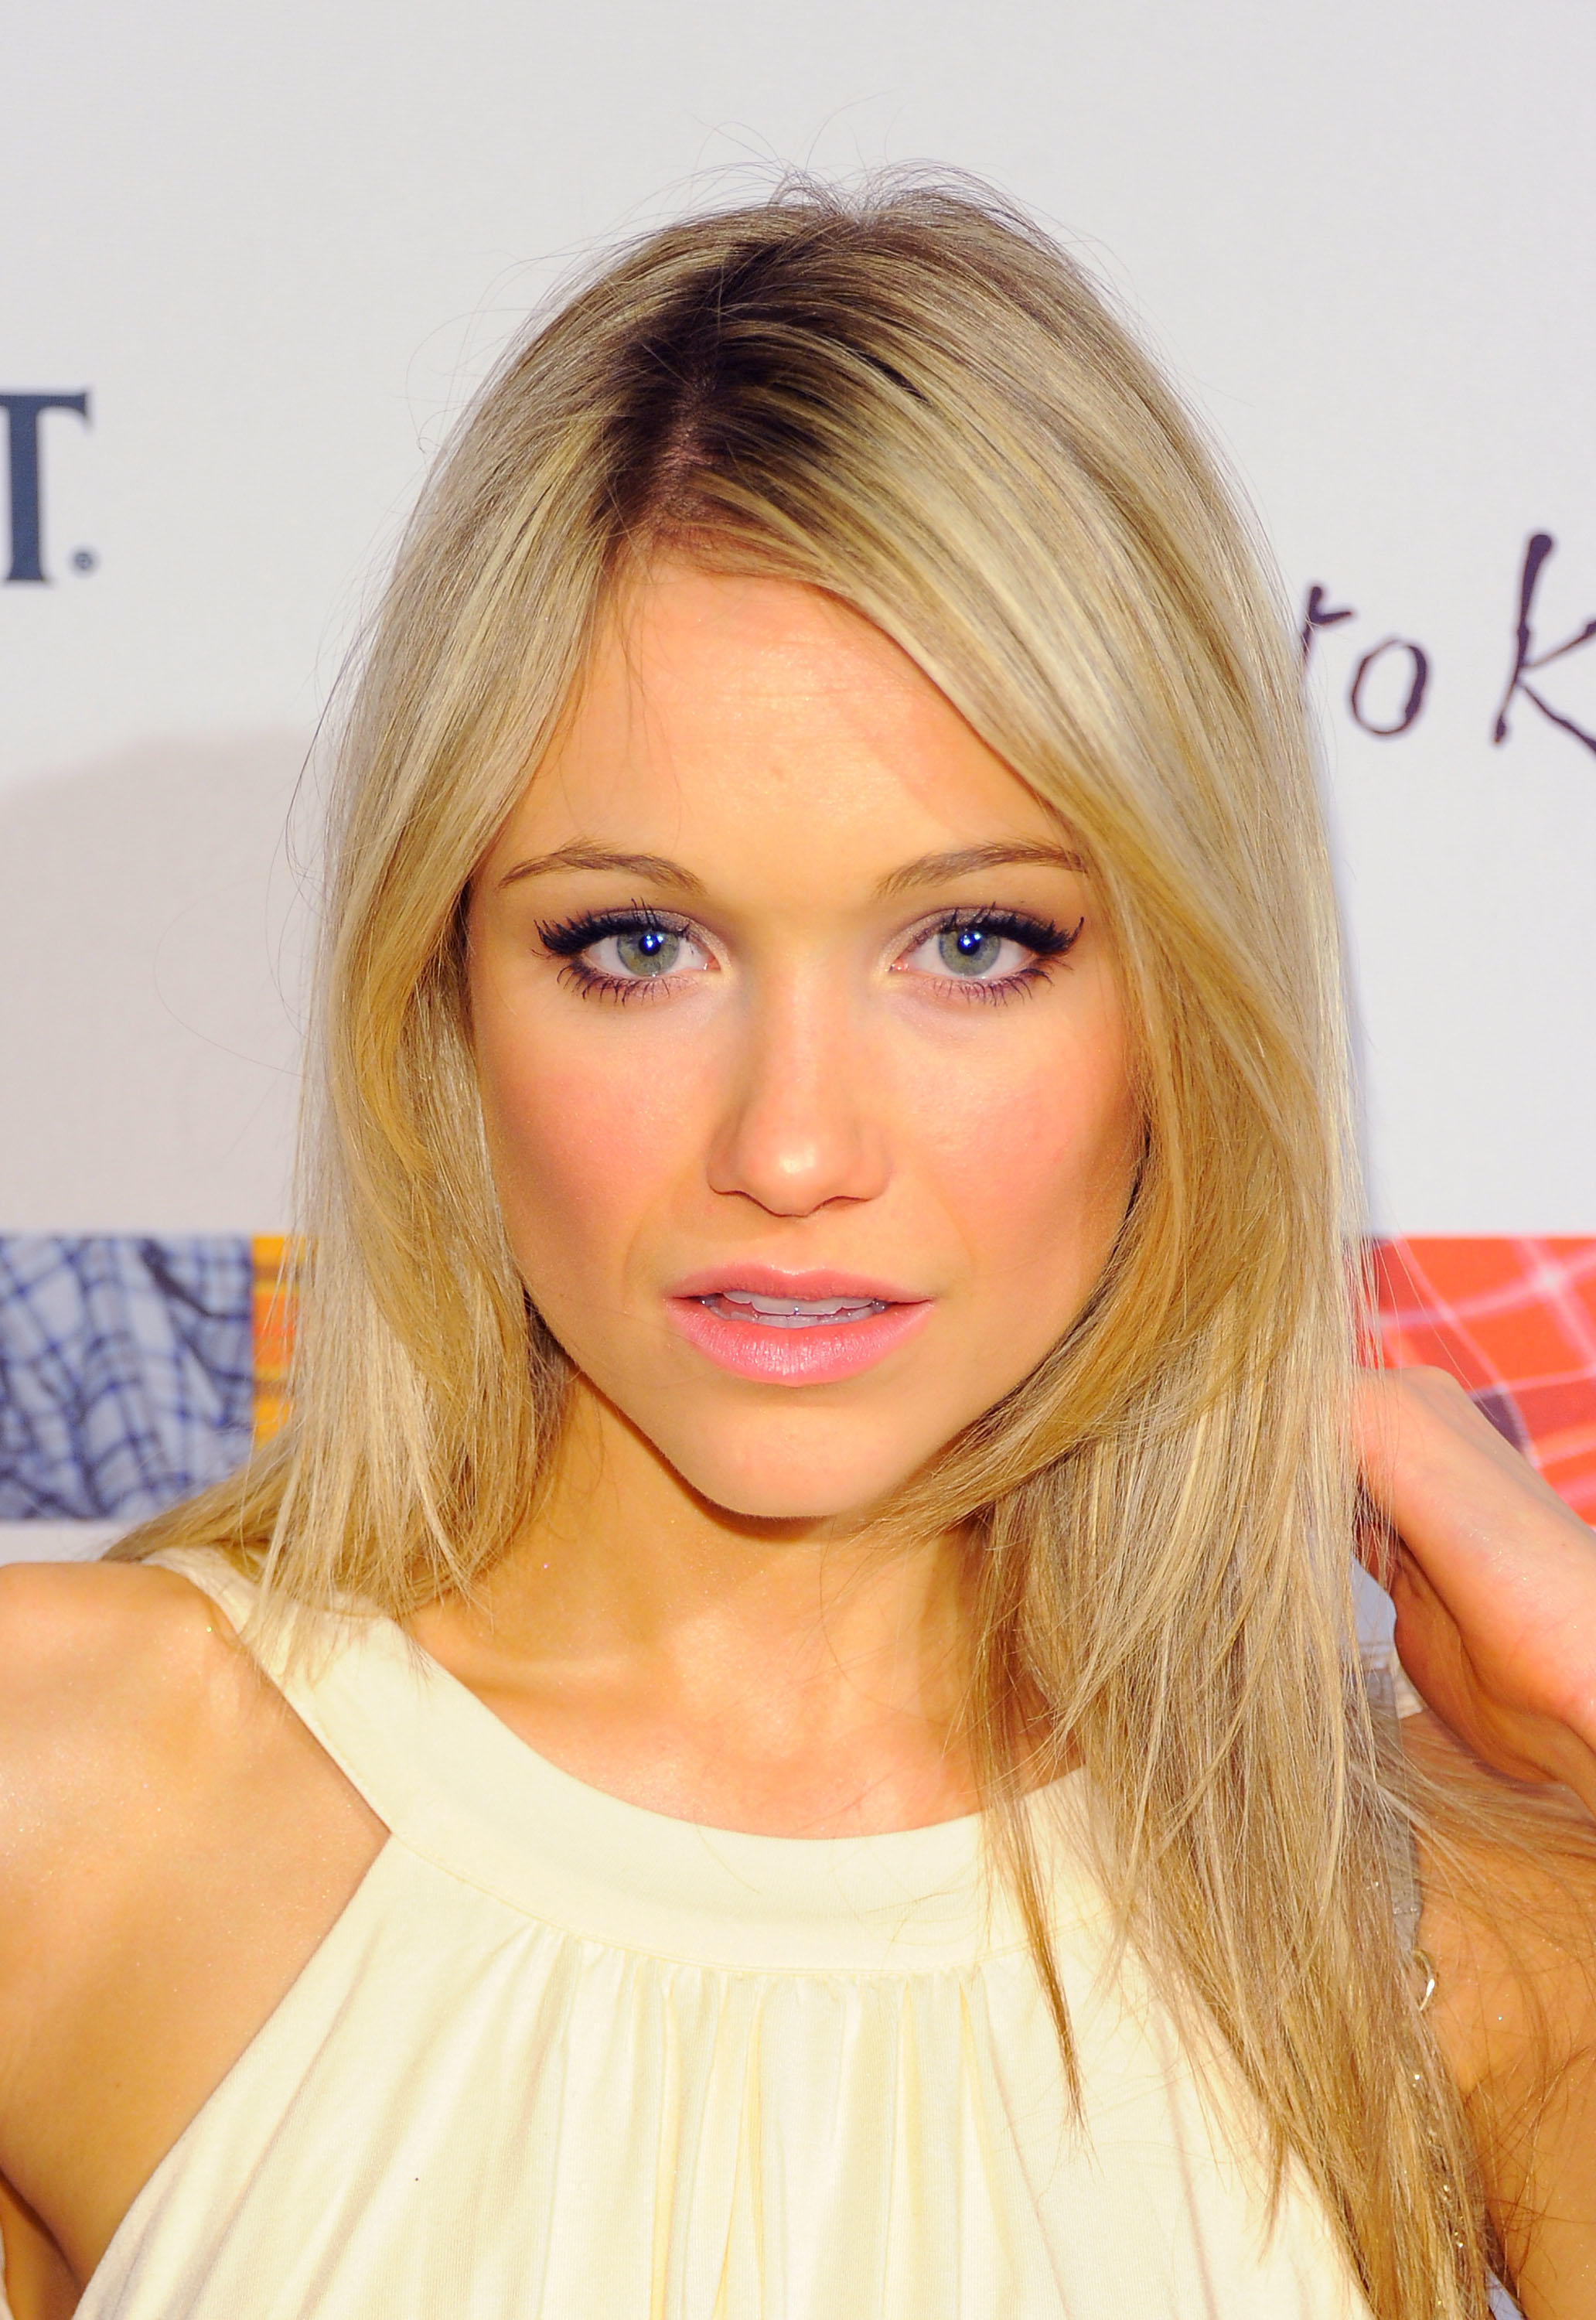 Katrina Bowden at the 9th Annual Dressed To Kilt Charity Fashion Show